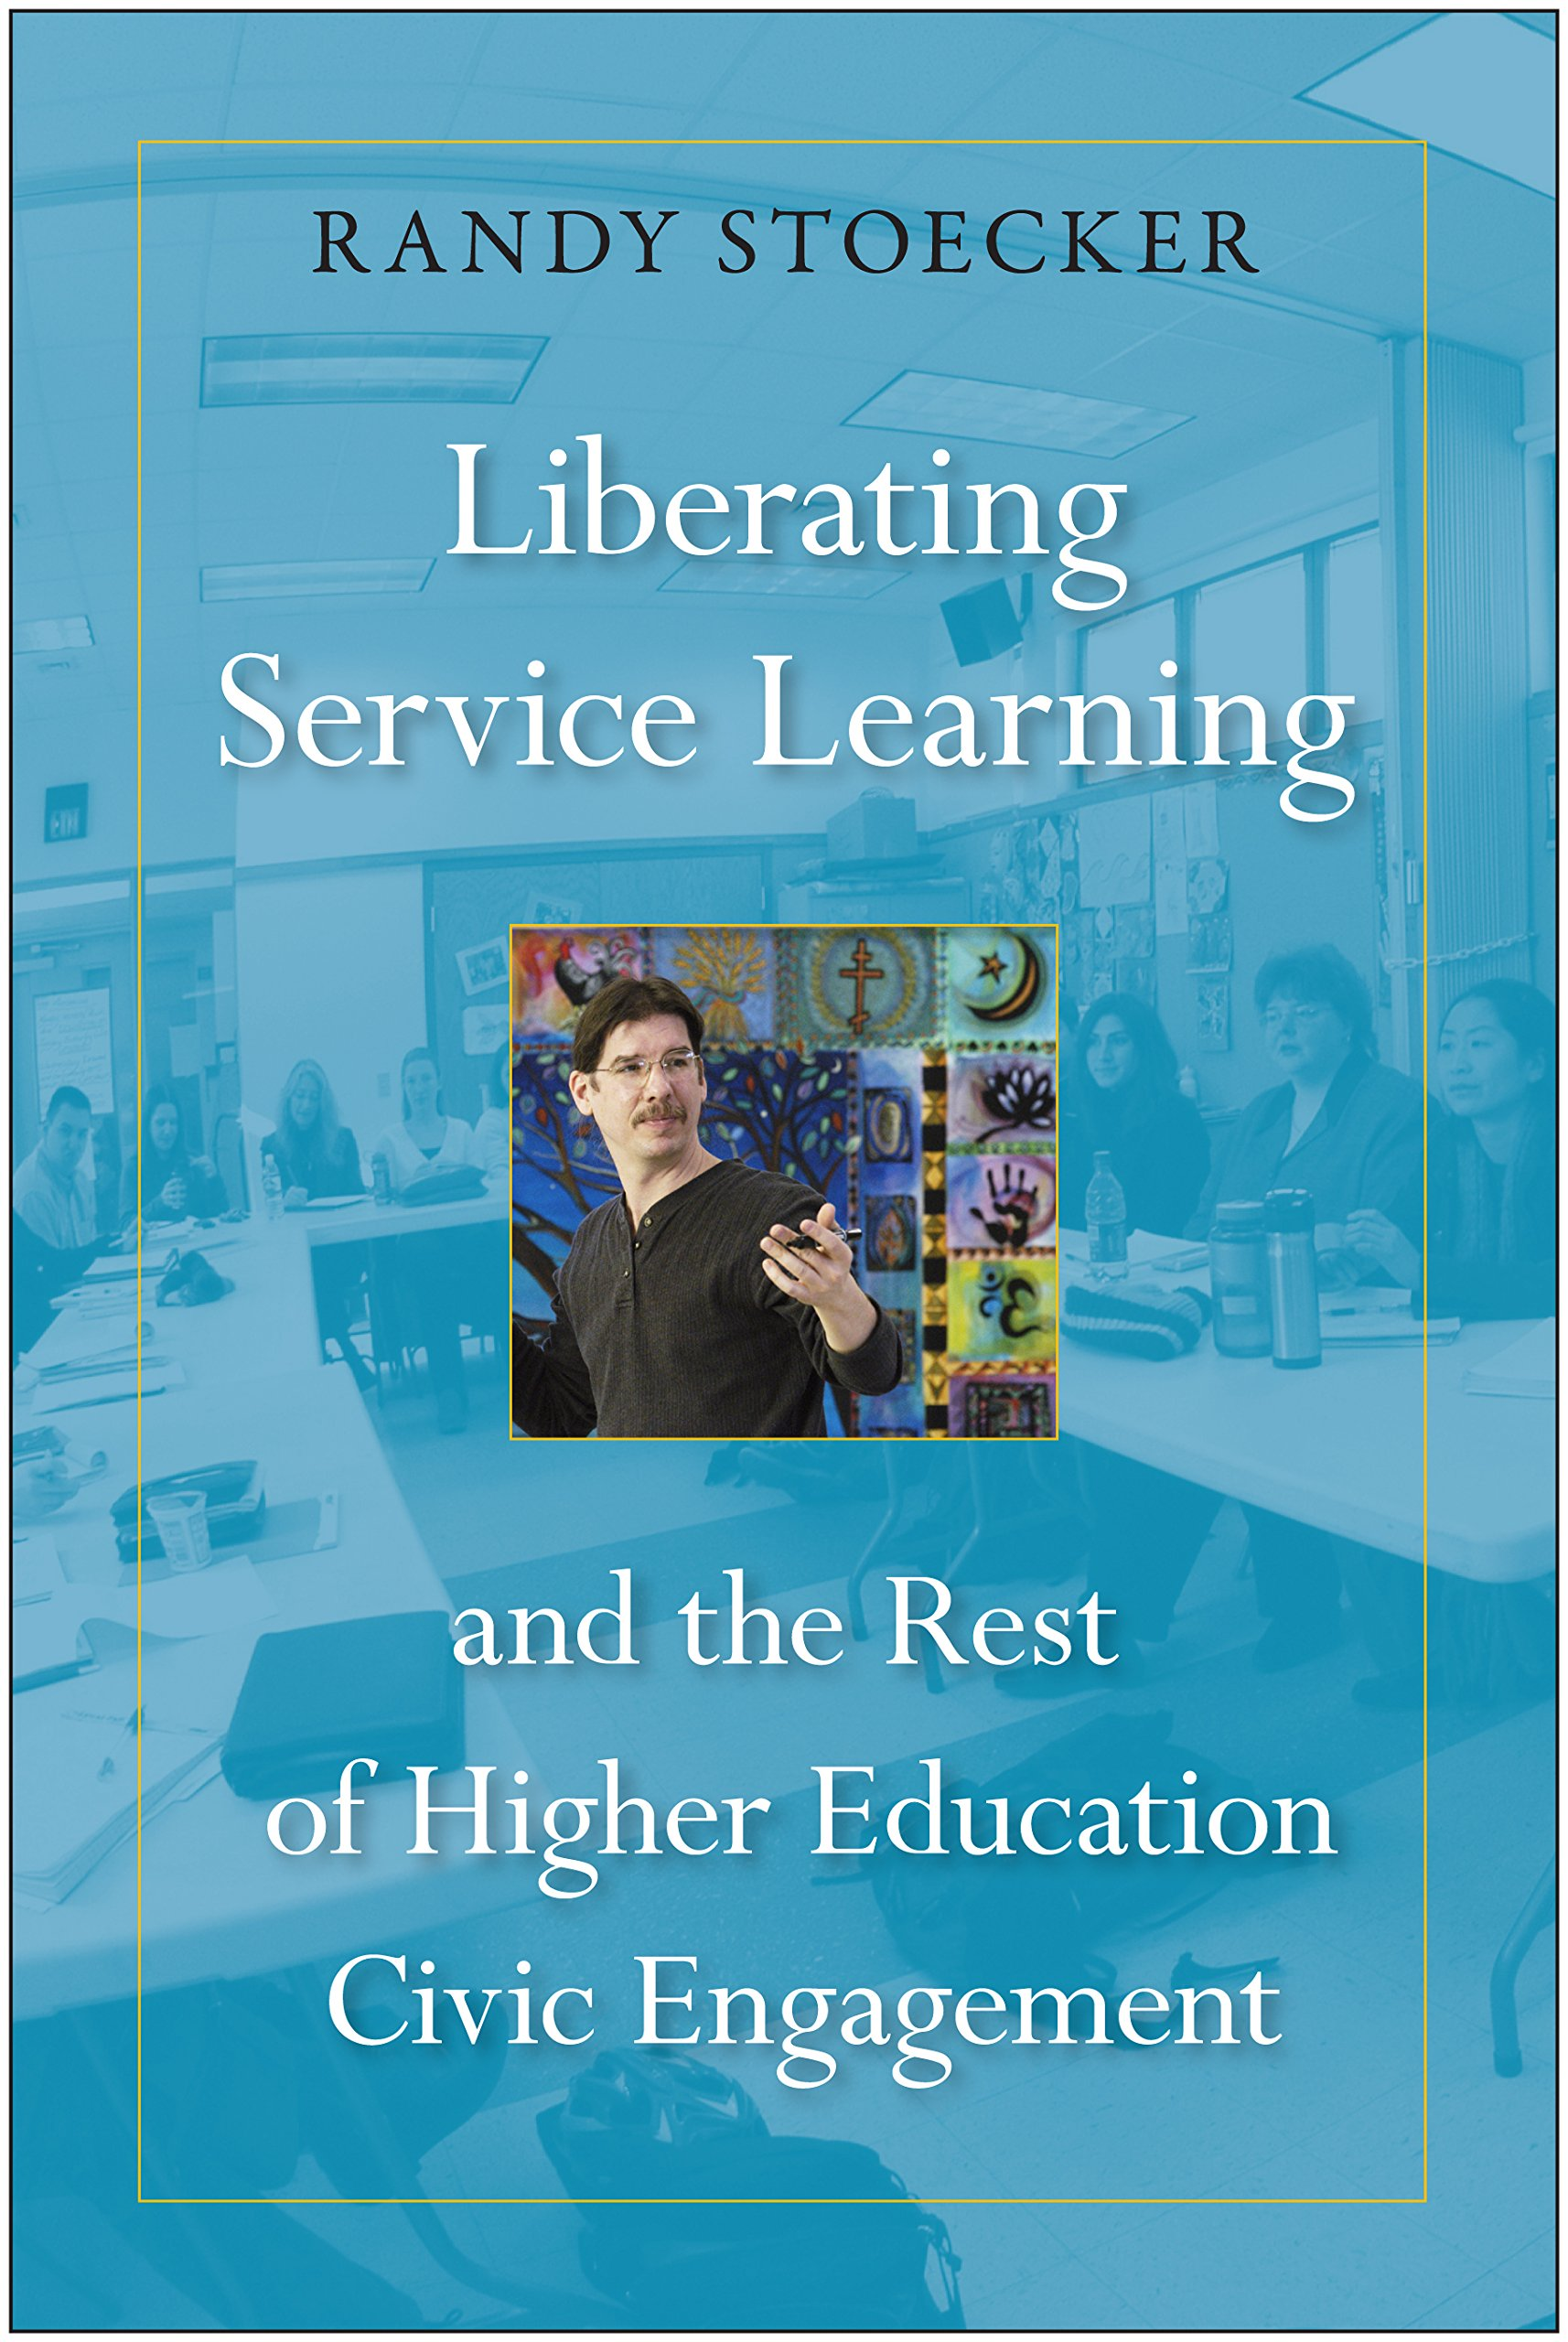 Download Liberating Service Learning and the Rest of Higher Education Civic Engagement ebook